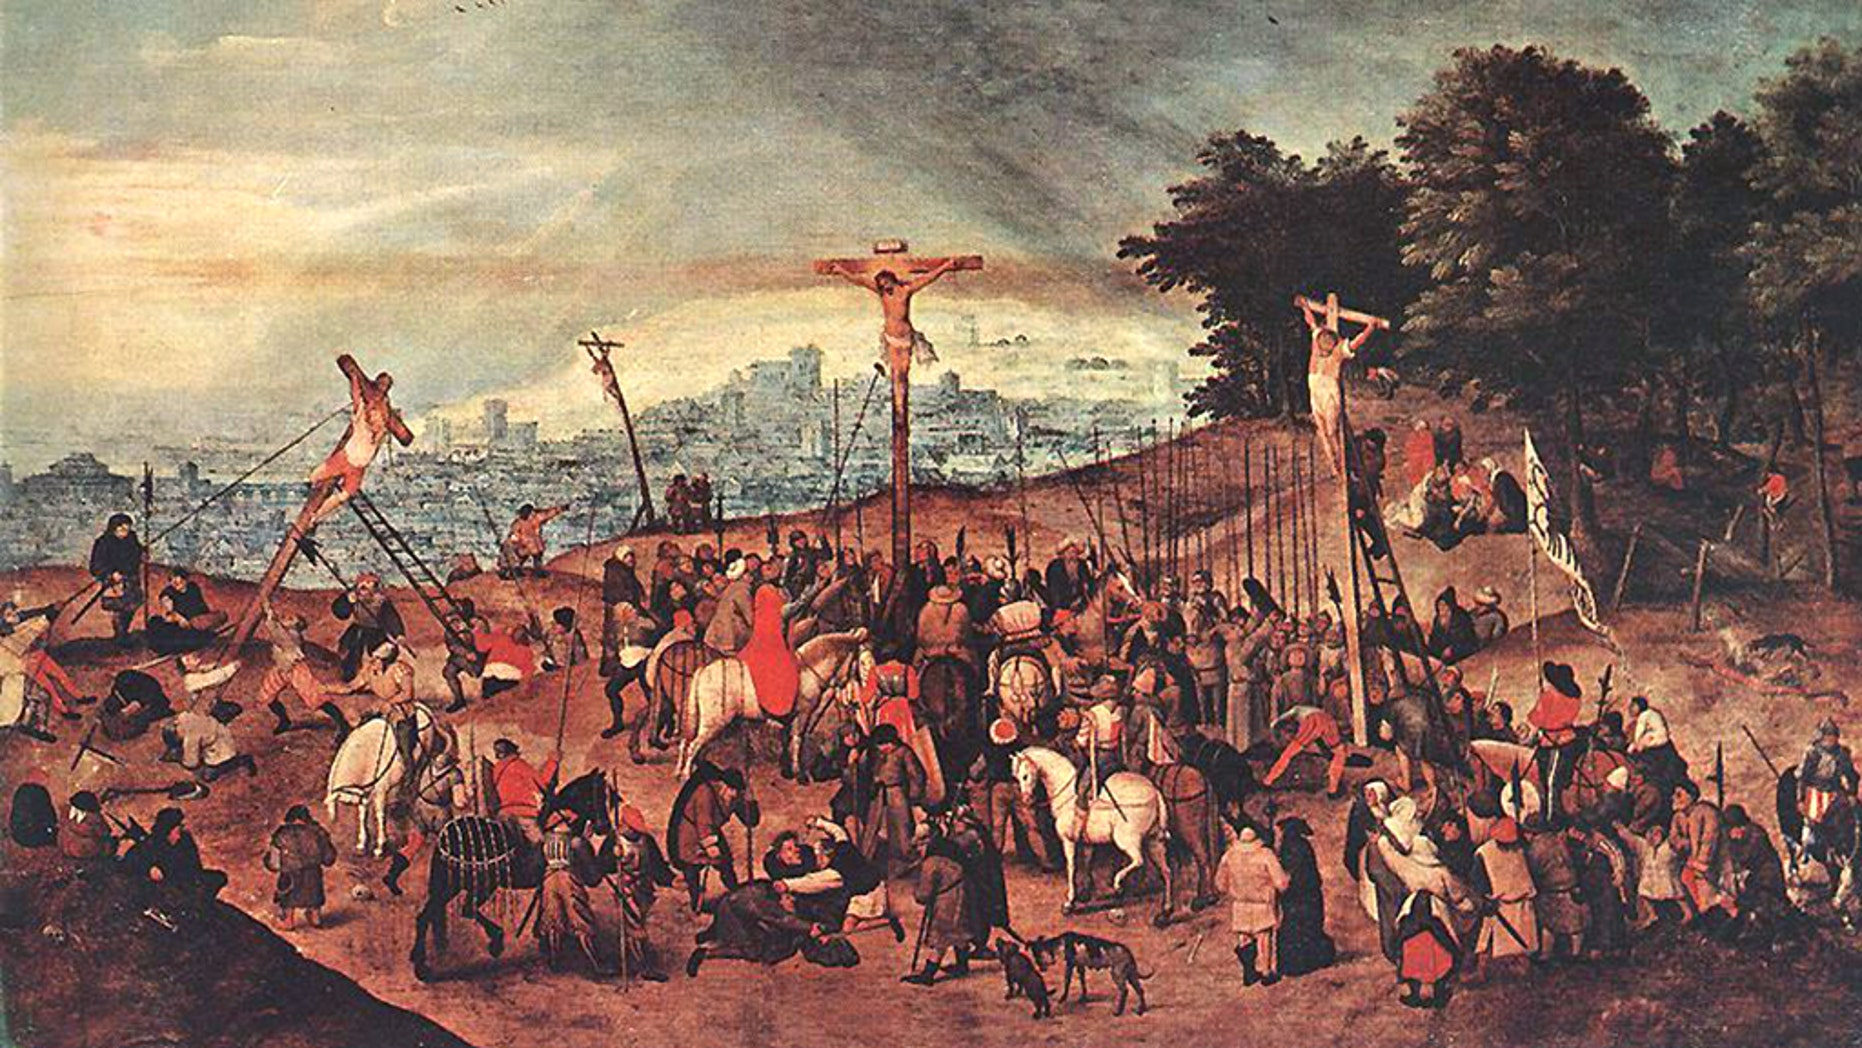 Seventeenth-century Flemish artist Pieter Brueghel the Younger's famous painting The Crucifixion was donated to the Santa Maria Maddalena church in the small Ligurian town of Castelnuovo Magra more than a century ago. Last month, the masterpiece was removed and a copy put up in its place to catch the would-be robbers.<br>